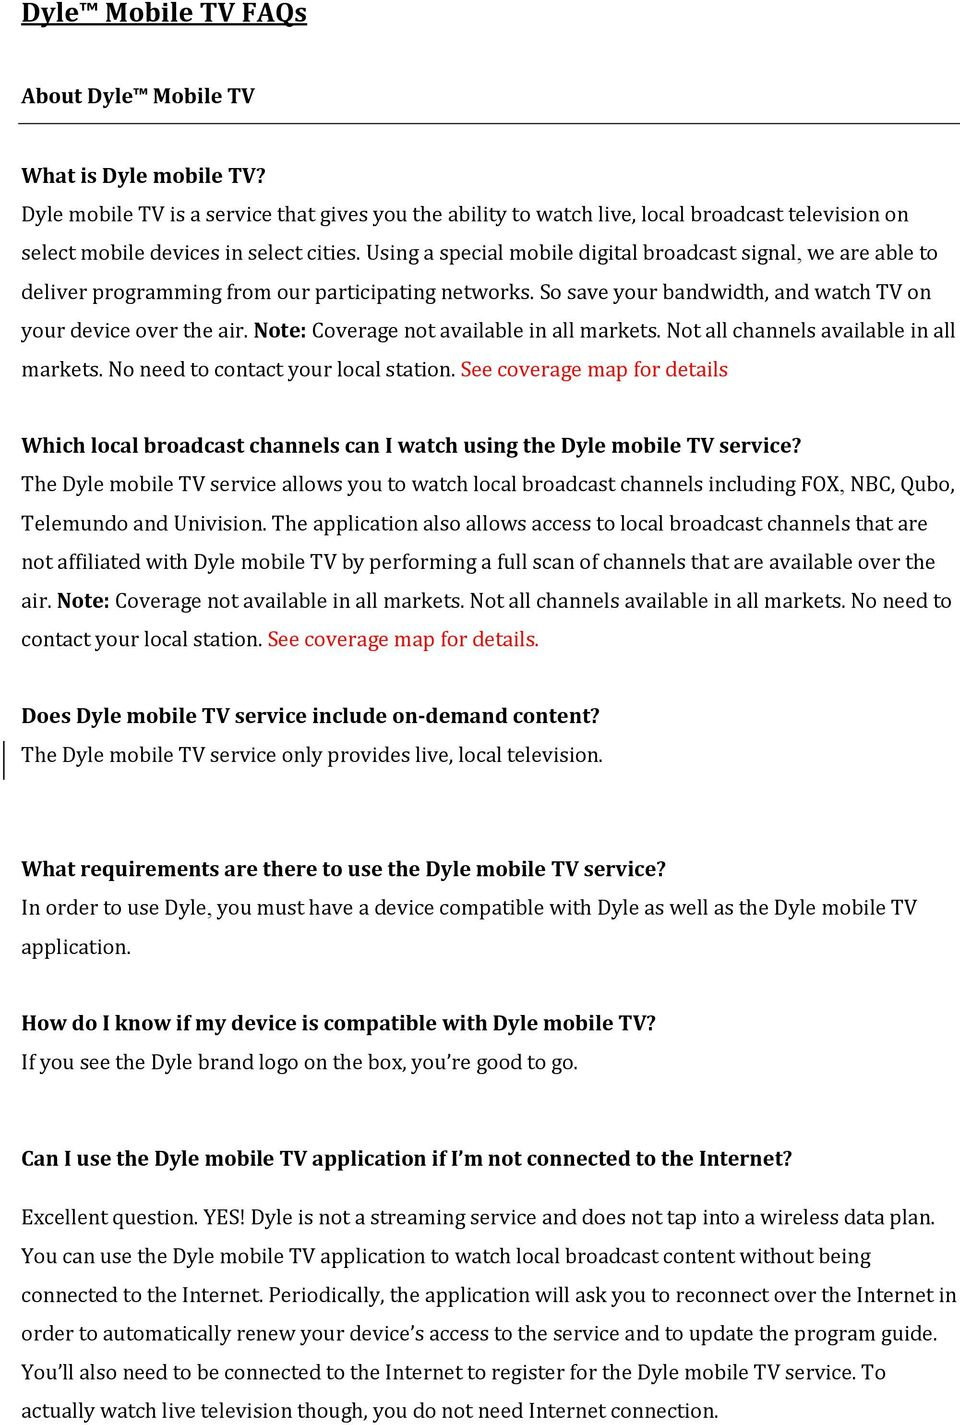 Which local broadcast channels can I watch using the Dyle mobile TV on